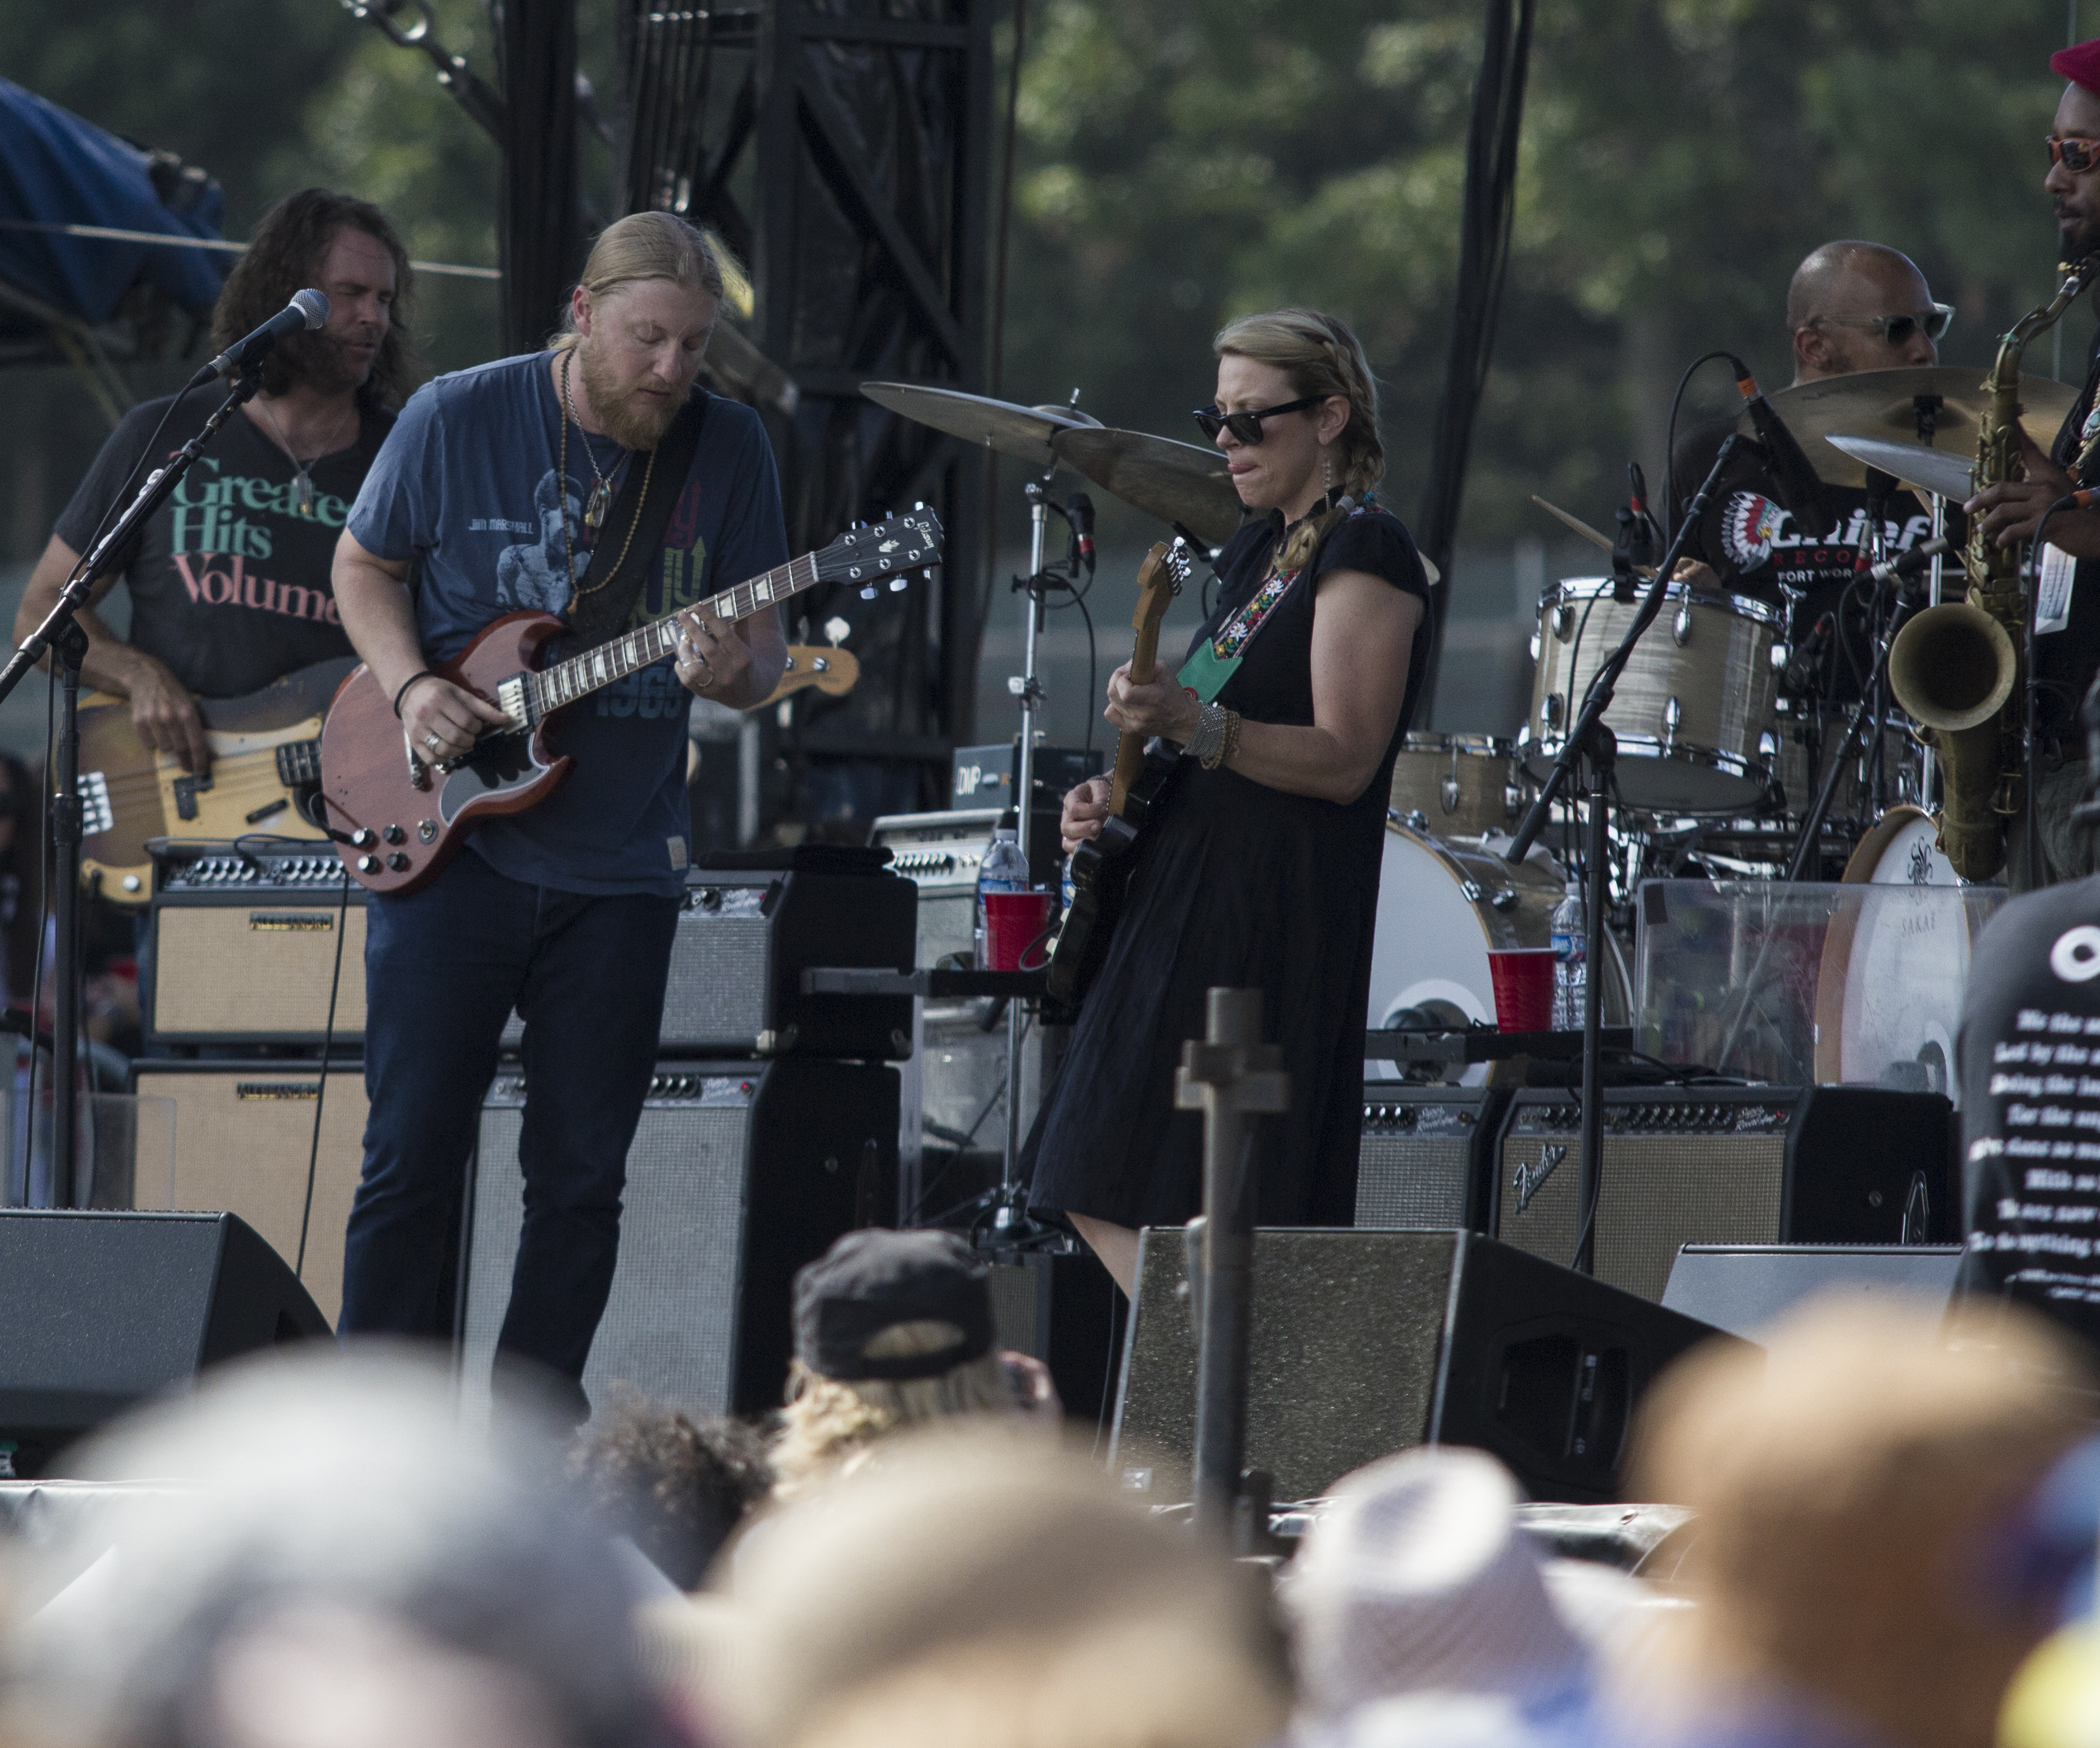 Tedeschi Trucks Band at Lockn Festival 2014. Photo by: Matthew McGuire